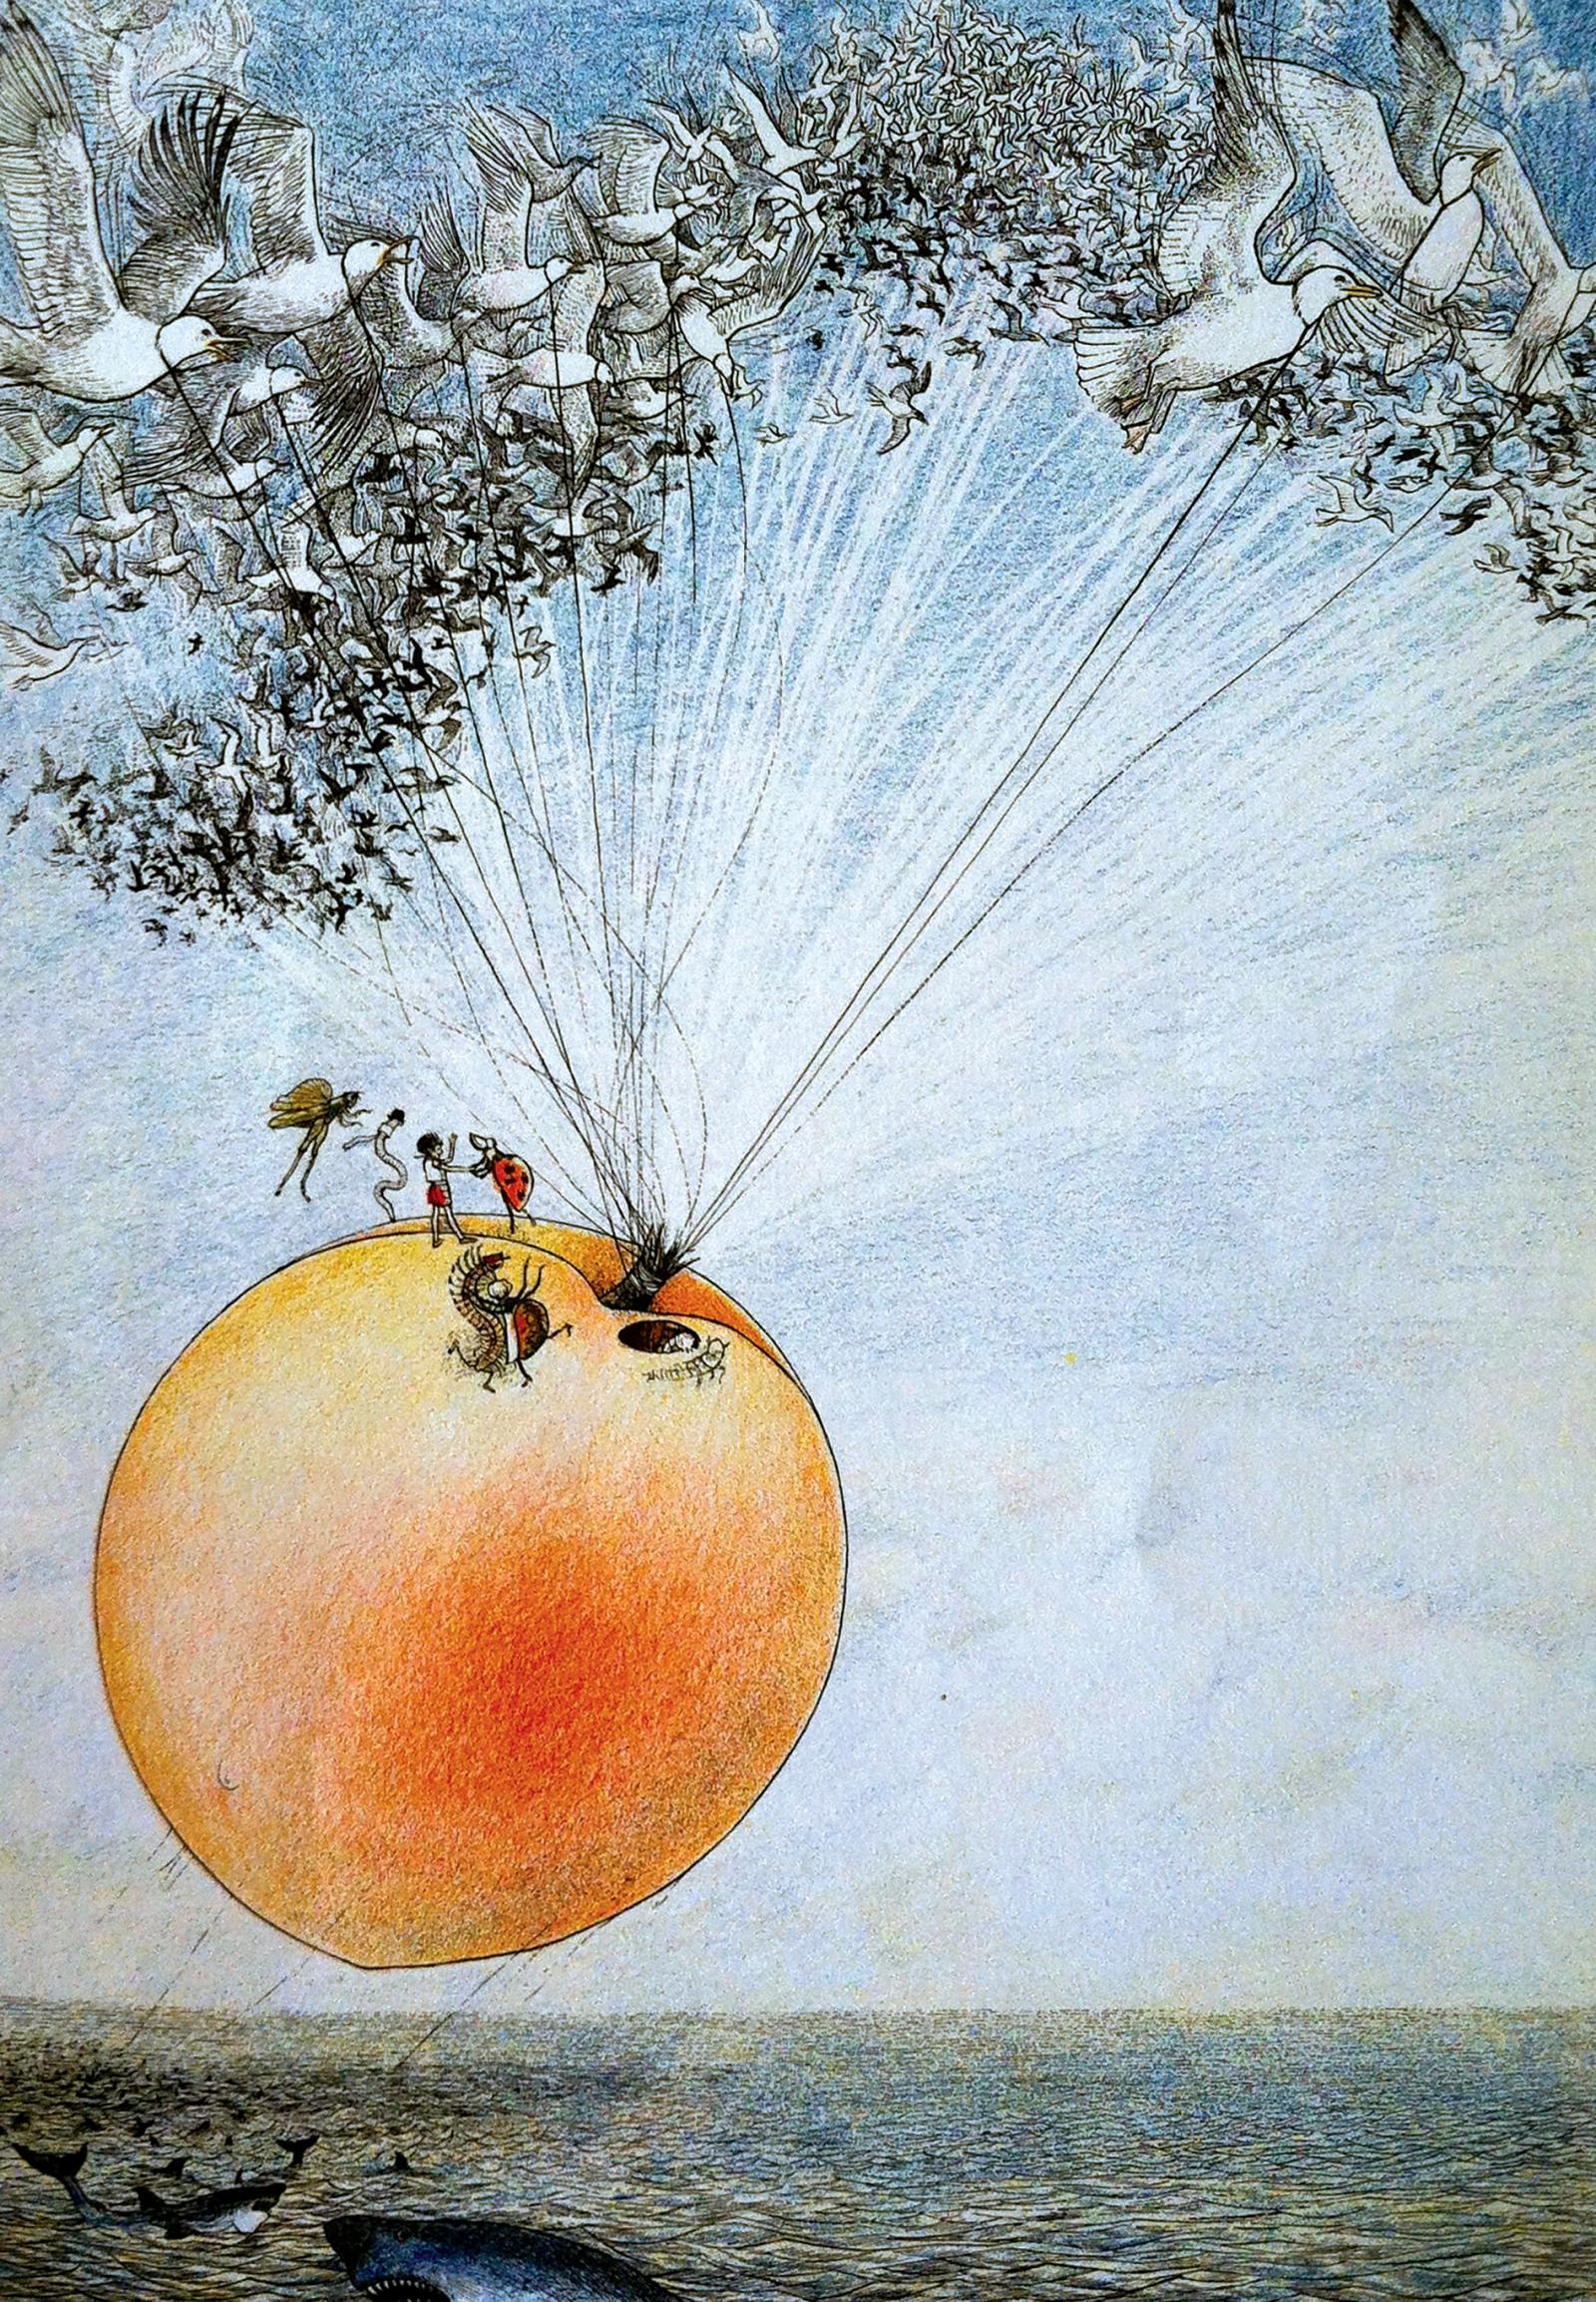 Illustration by Nancy Ekholm Burkert for 'James and the Giant Peach' by Raold Dahl